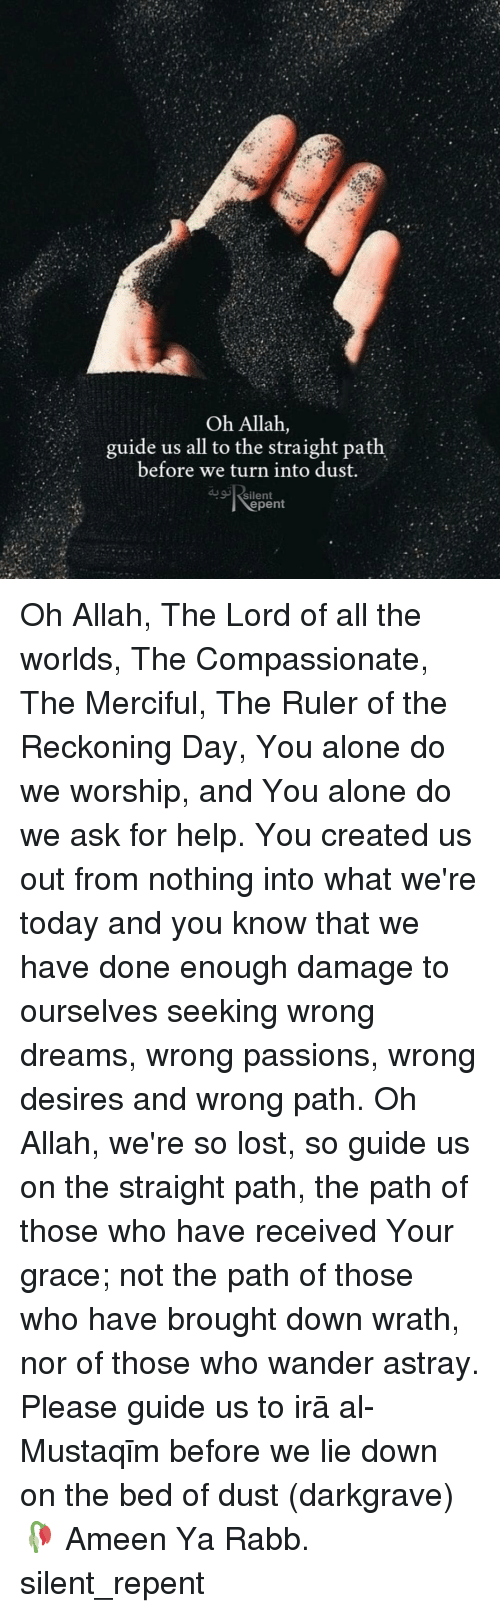 worship: Oh Allah,  guide us all to the straight path  before we turn into dust.  silent  epent Oh Allah, The Lord of all the worlds, The Compassionate, The Merciful, The Ruler of the Reckoning Day, You alone do we worship, and You alone do we ask for help. You created us out from nothing into what we're today and you know that we have done enough damage to ourselves seeking wrong dreams, wrong passions, wrong desires and wrong path. Oh Allah, we're so lost, so guide us on the straight path, the path of those who have received Your grace; not the path of those who have brought down wrath, nor of those who wander astray. Please guide us to Ṣirāṭ al-Mustaqīm before we lie down on the bed of dust (darkgrave)🥀 Ameen Ya Rabb. silent_repent